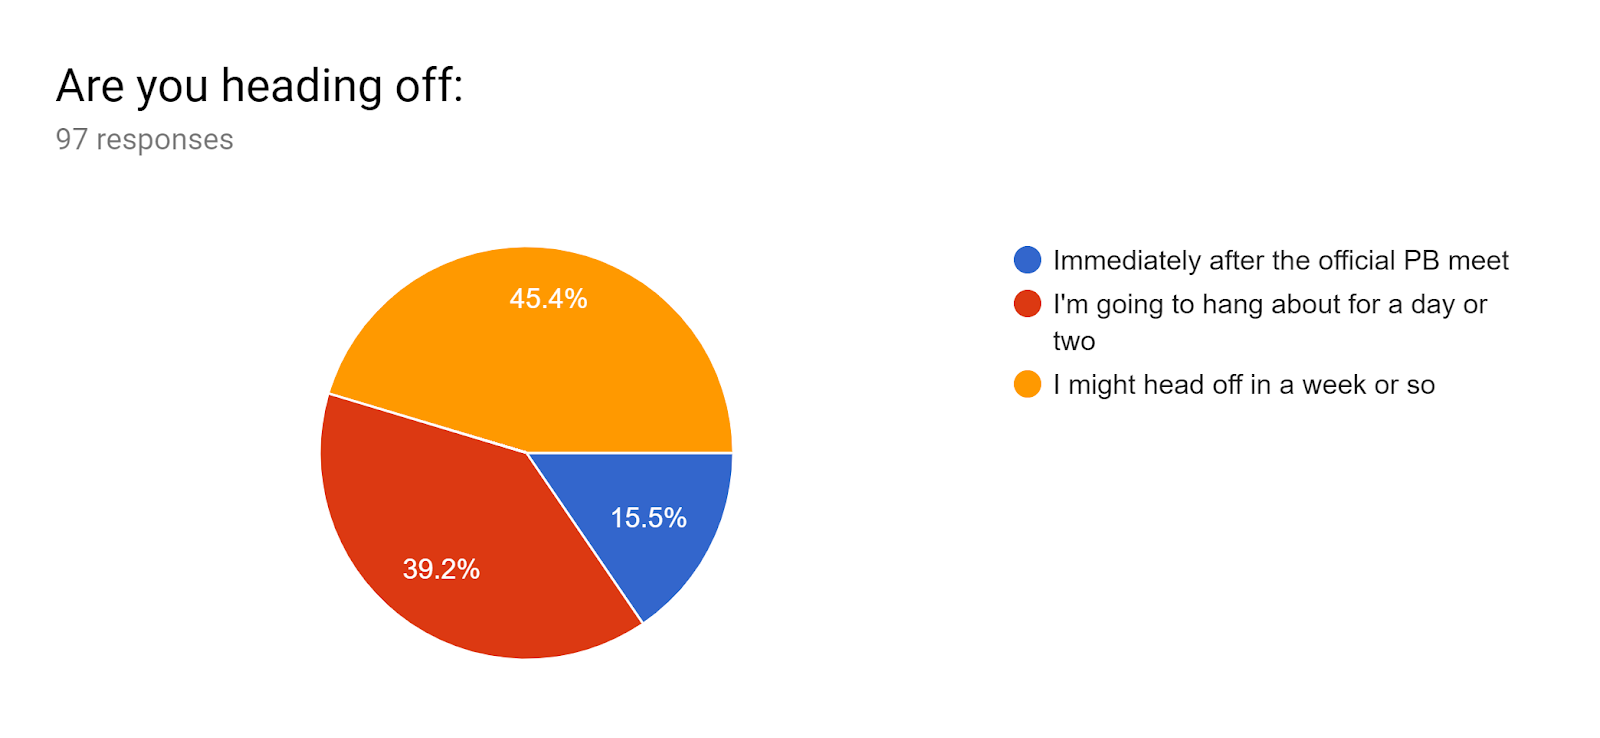 Forms response chart. Question title: Are you heading off:. Number of responses: 97 responses.